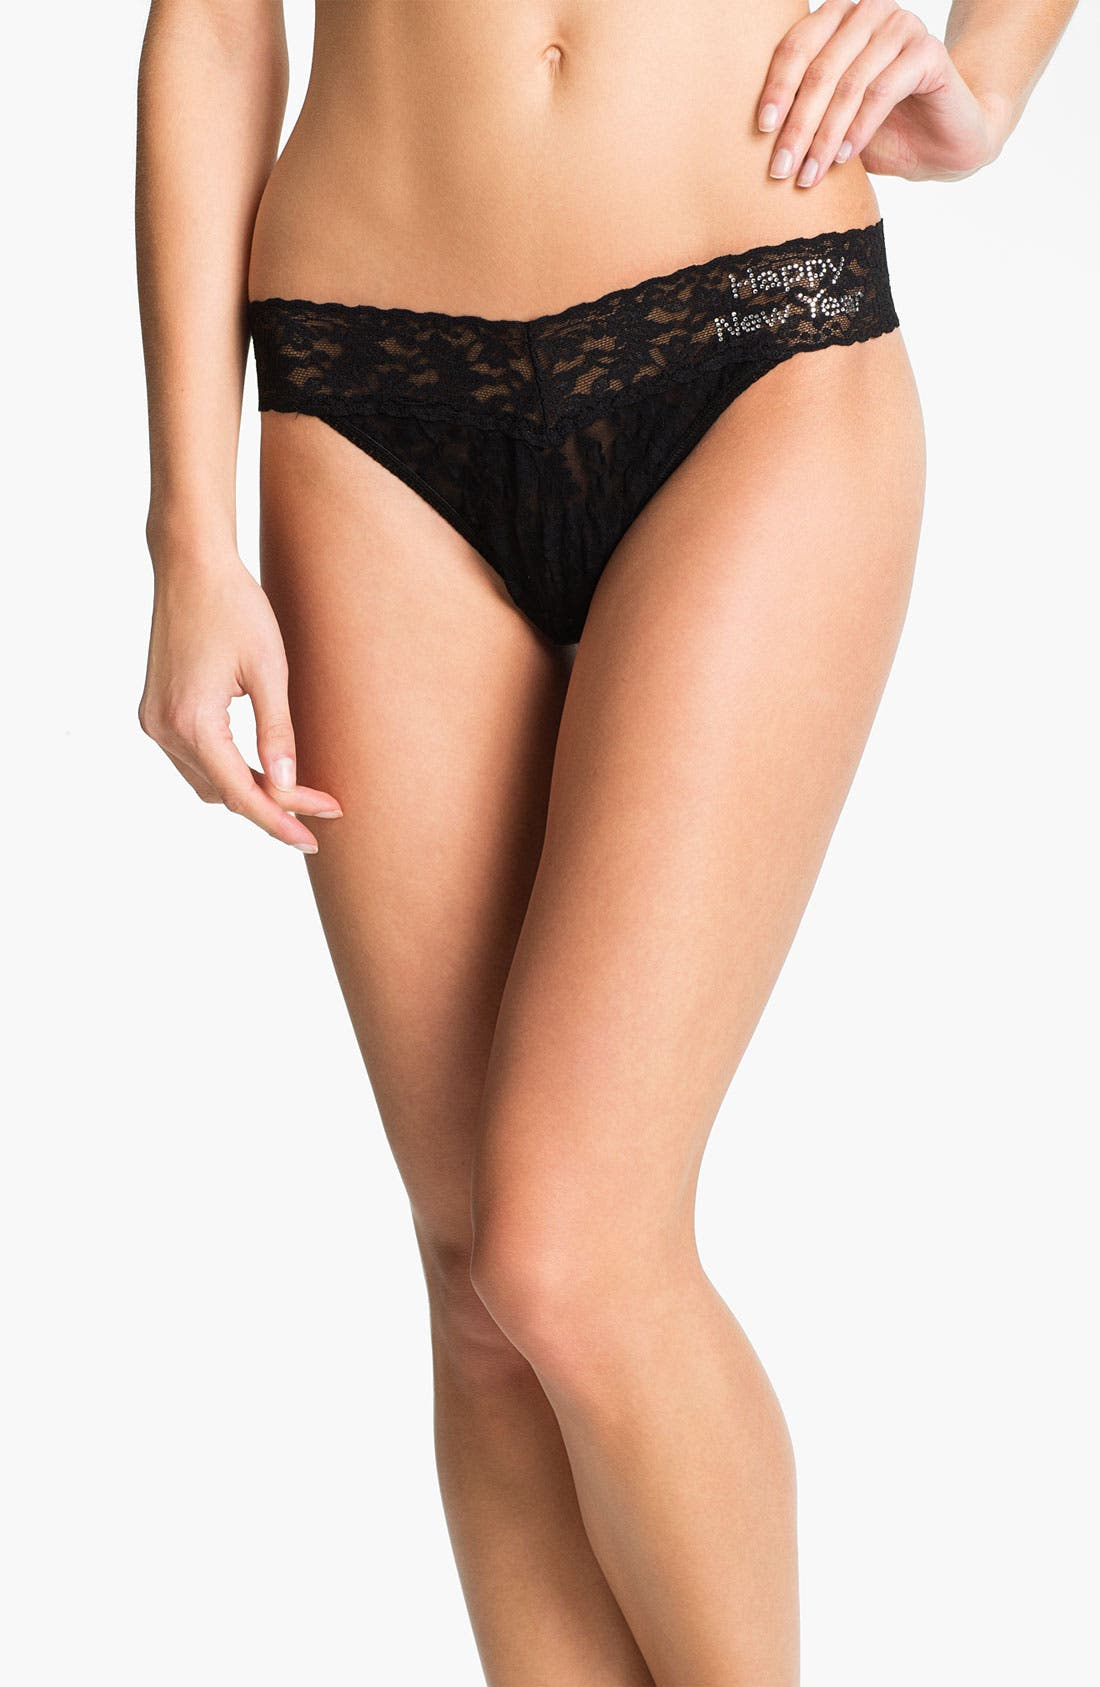 Alternate Image 1 Selected - Hanky Panky 'Happy New Year' Embellished Regular Rise Thong